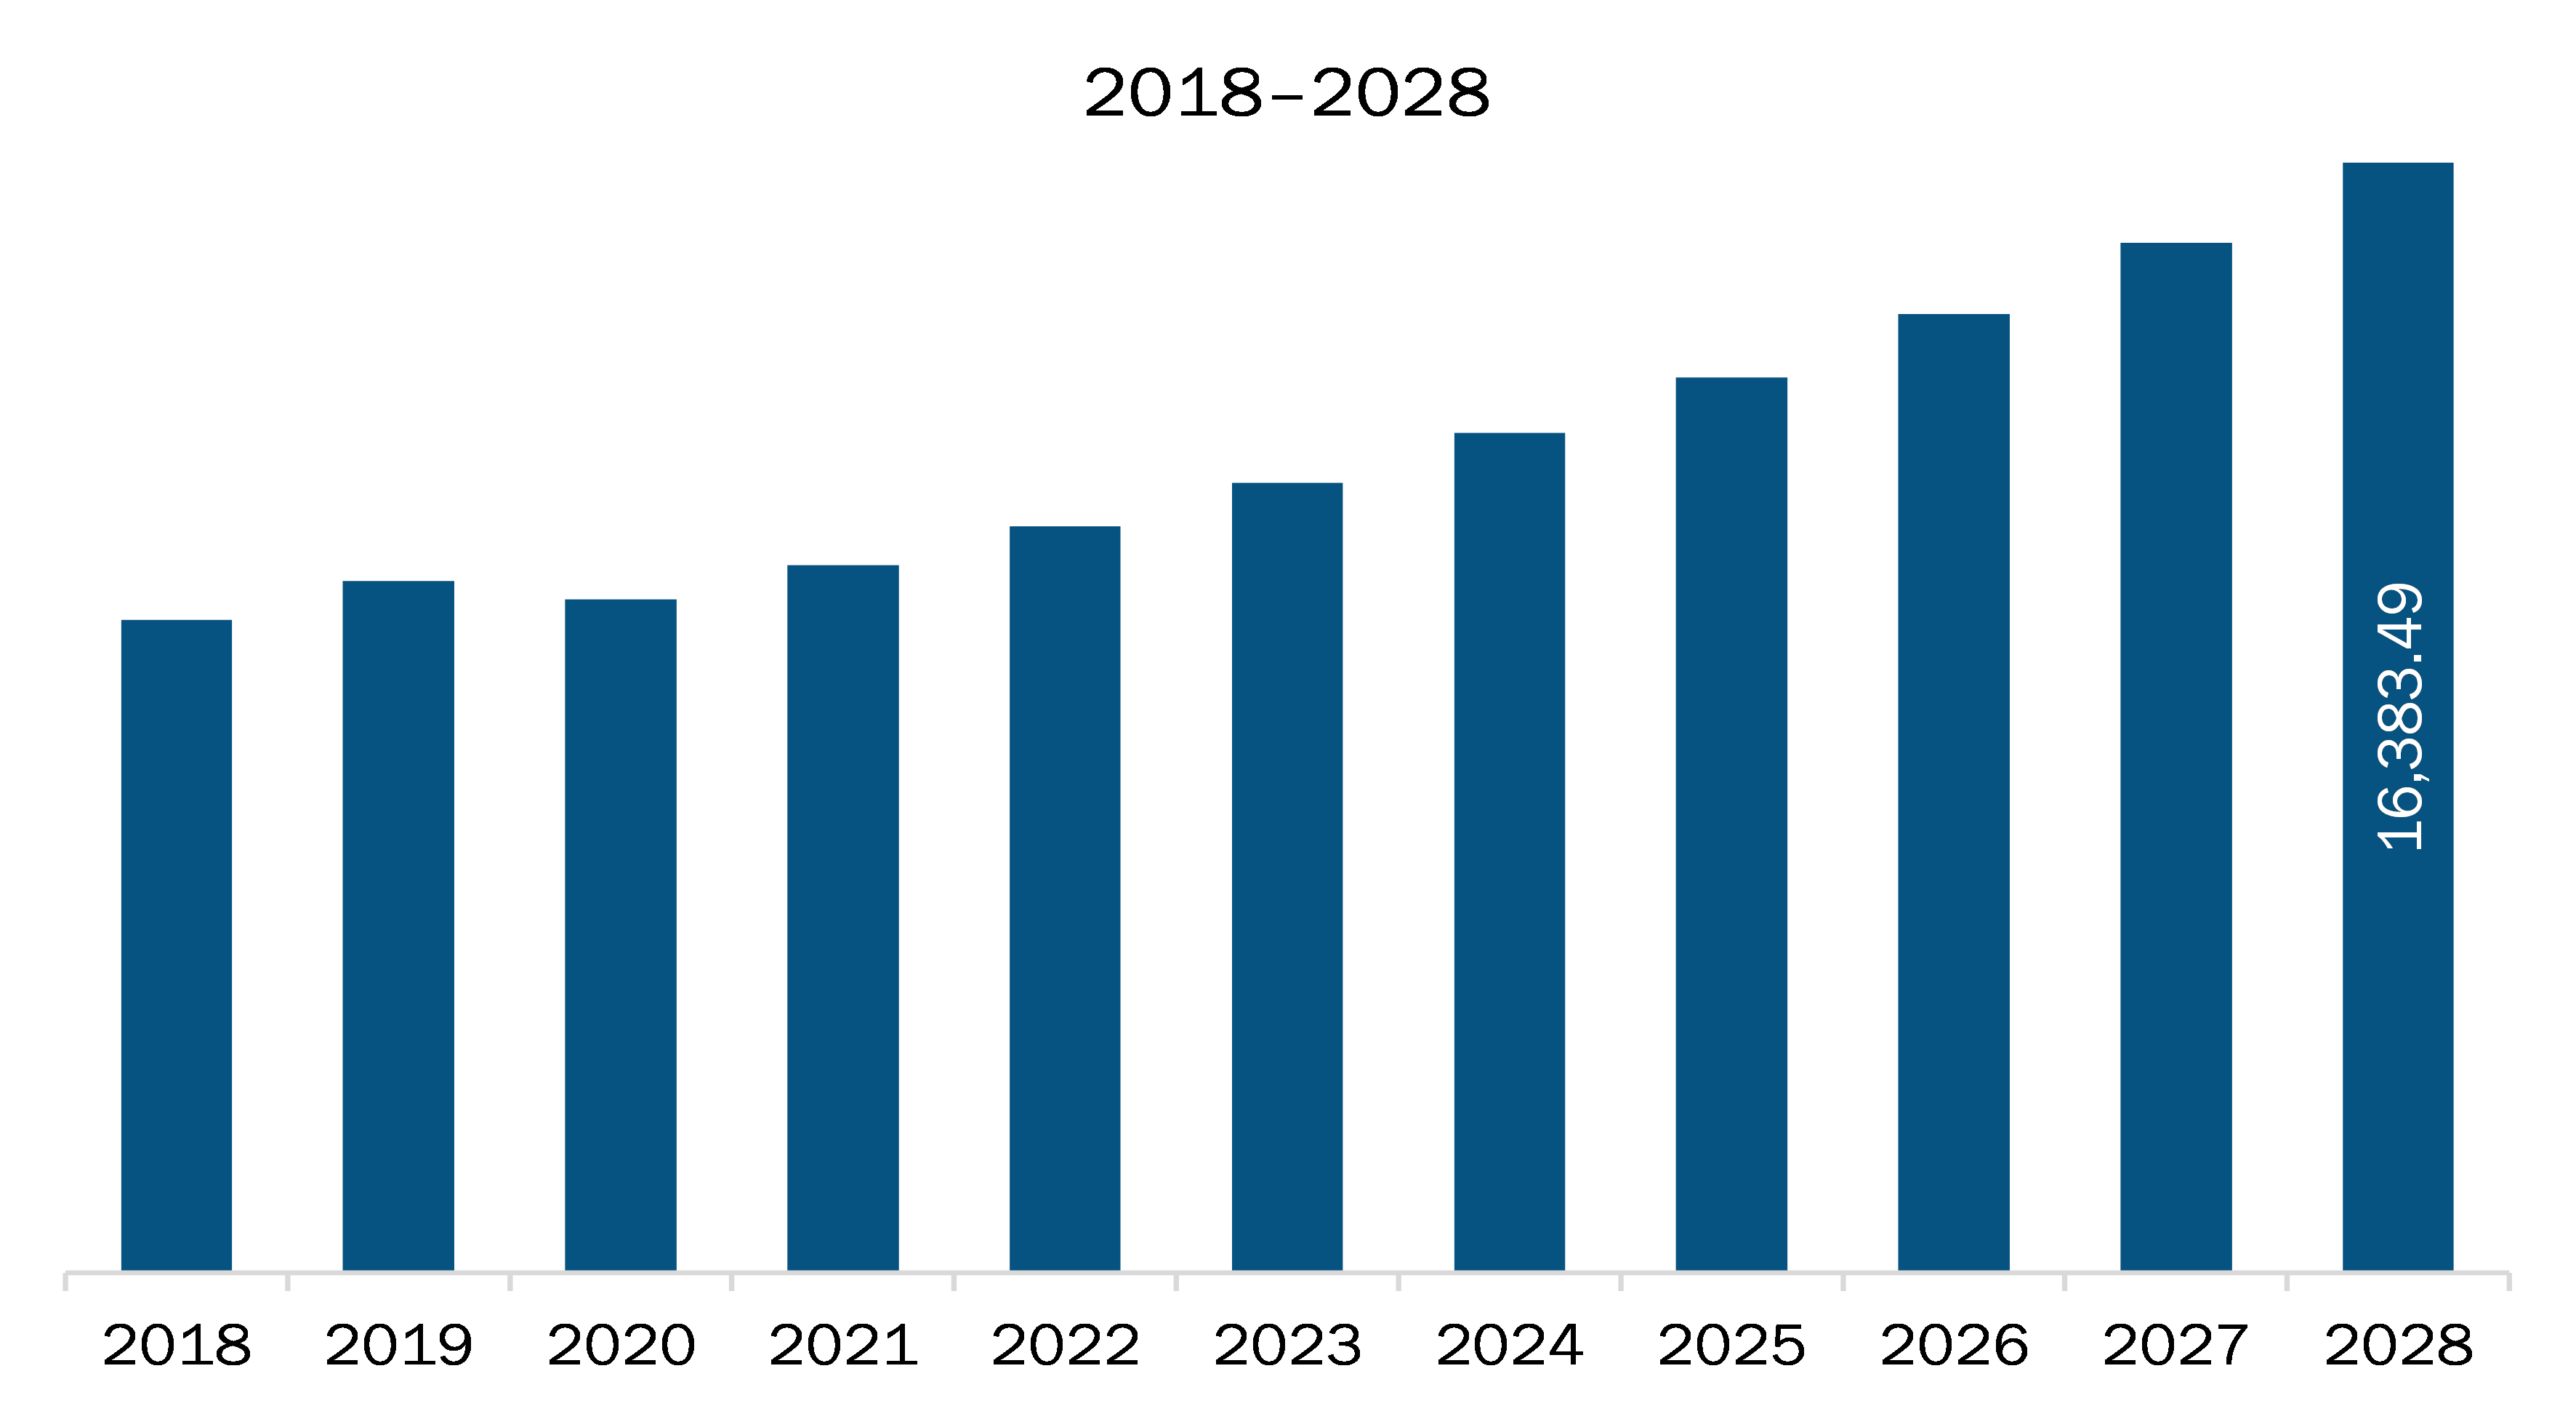 Europe helicopters market